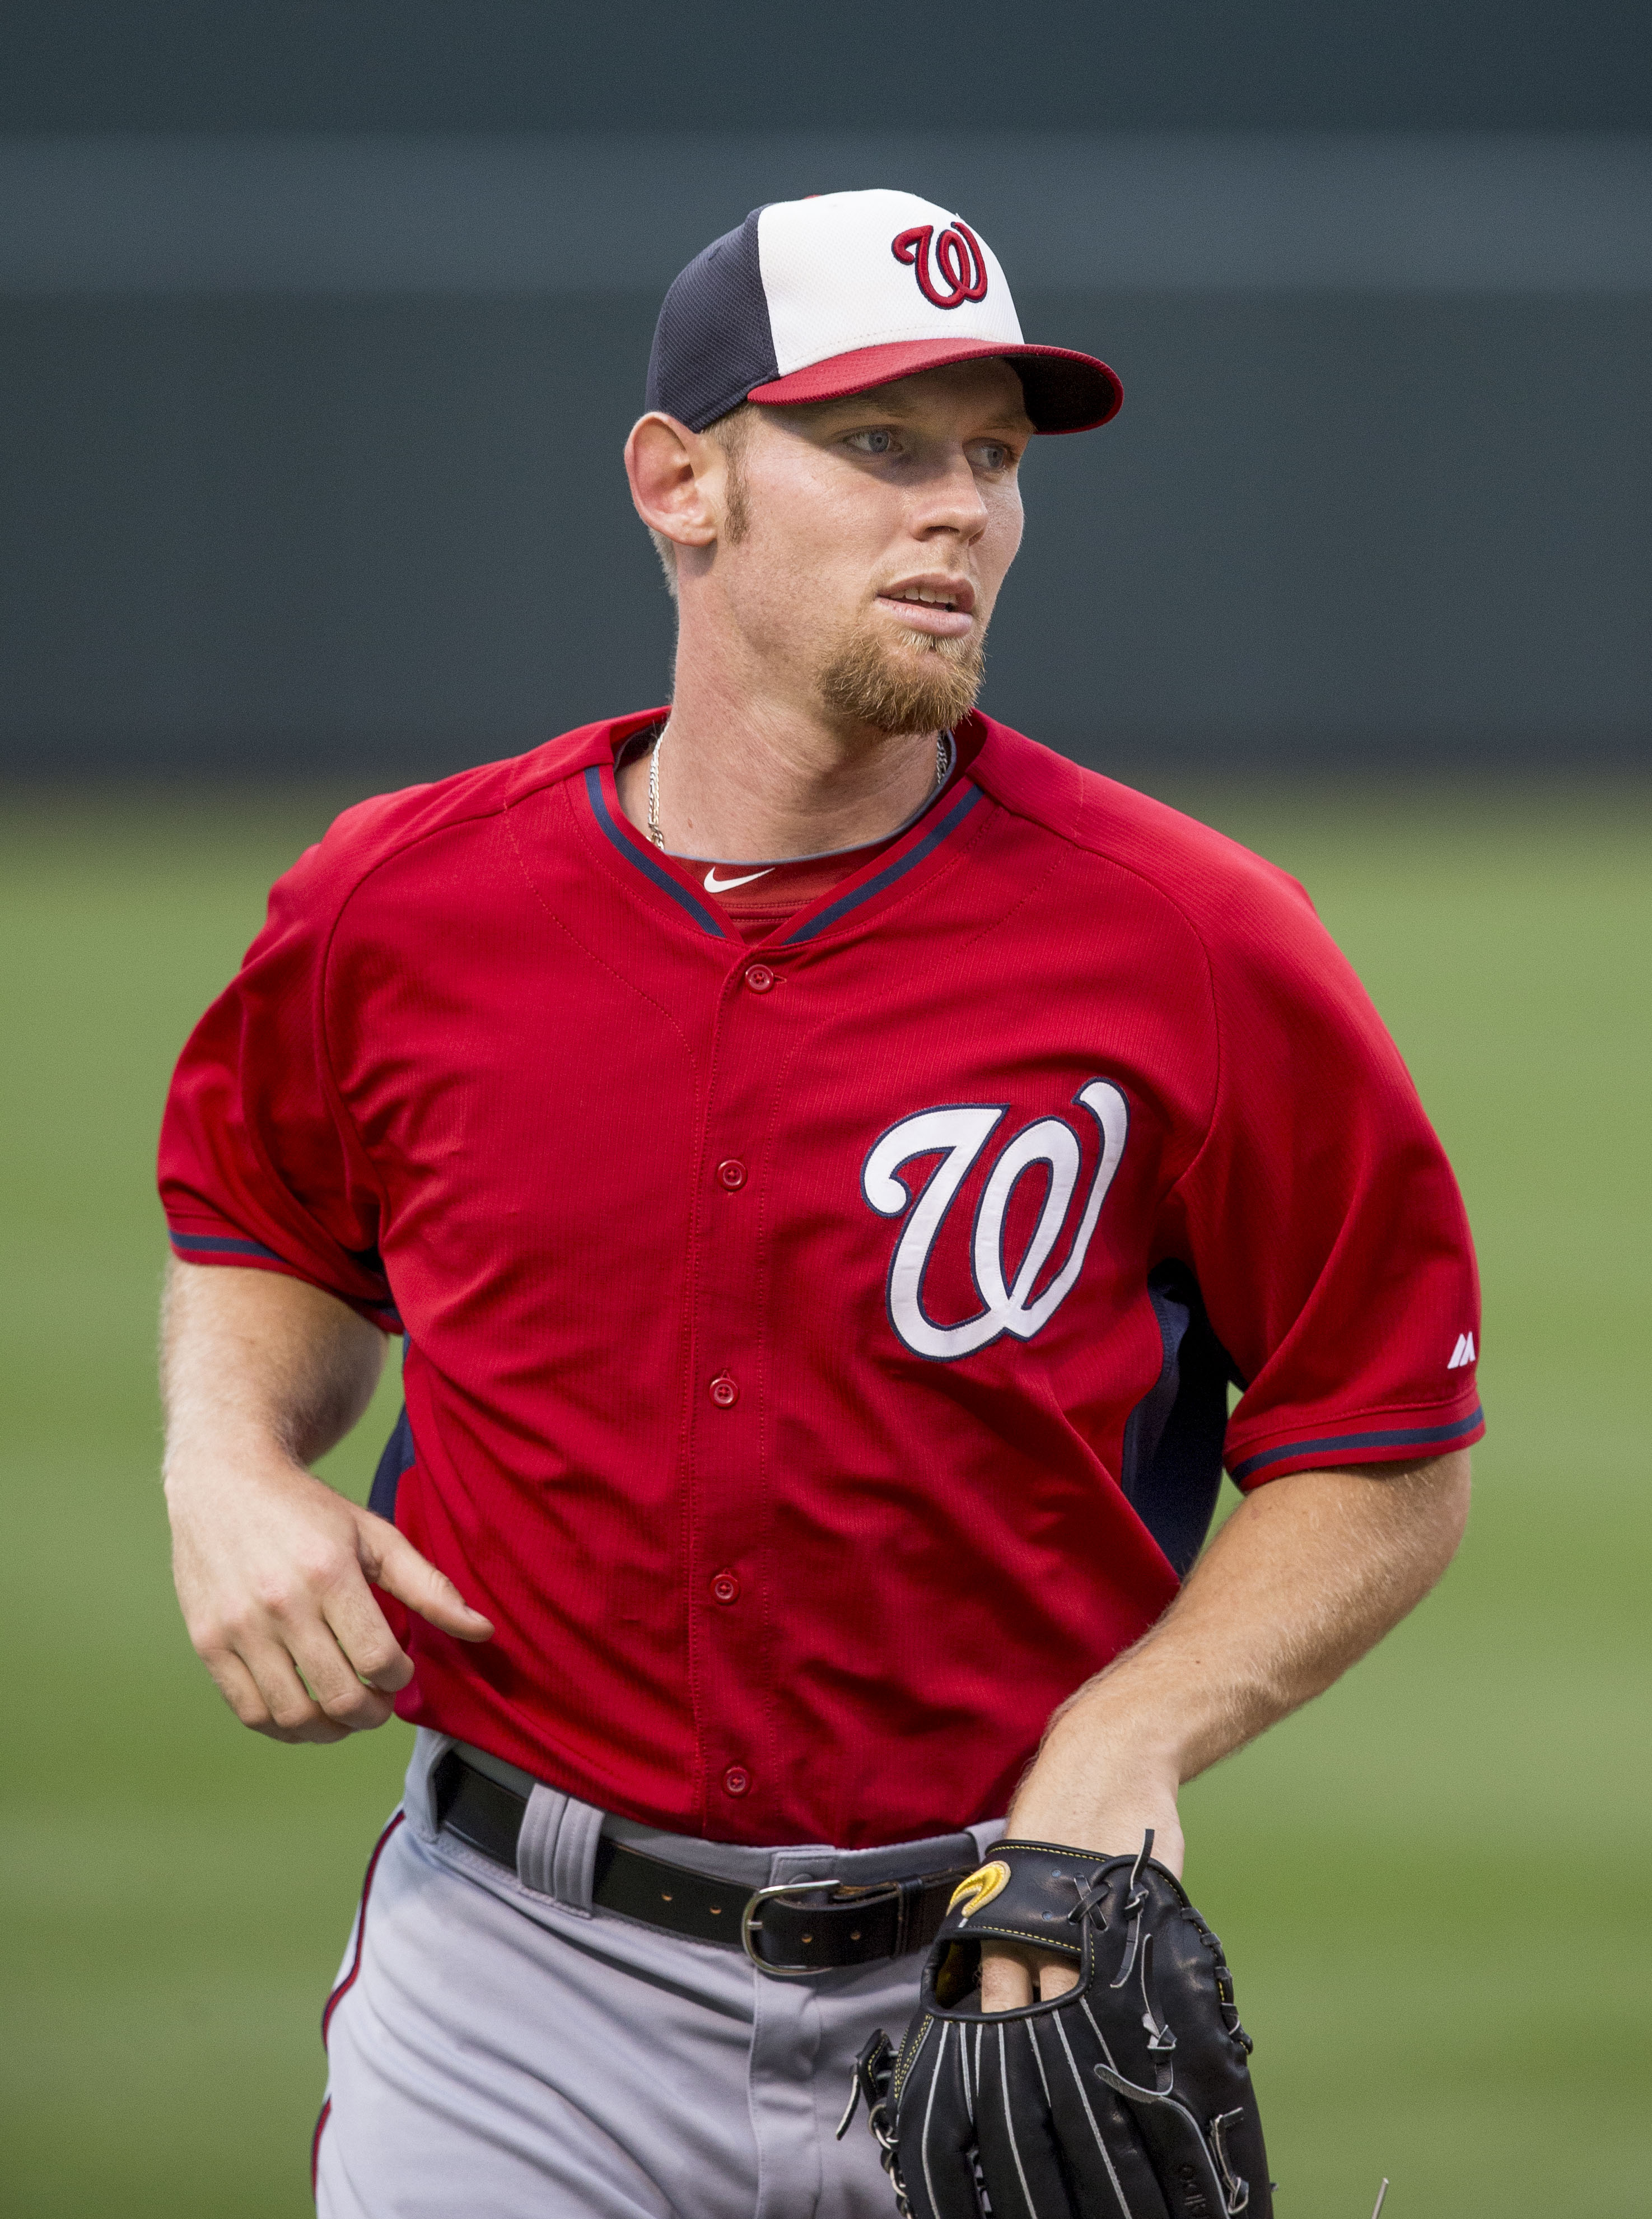 October 29, 2019 -- The Nationals's top hitter for the game was Juan Soto in the  7 to 2 againstthe Astros on the road. The Nationals starting pitcher was Stephen Strasburg.